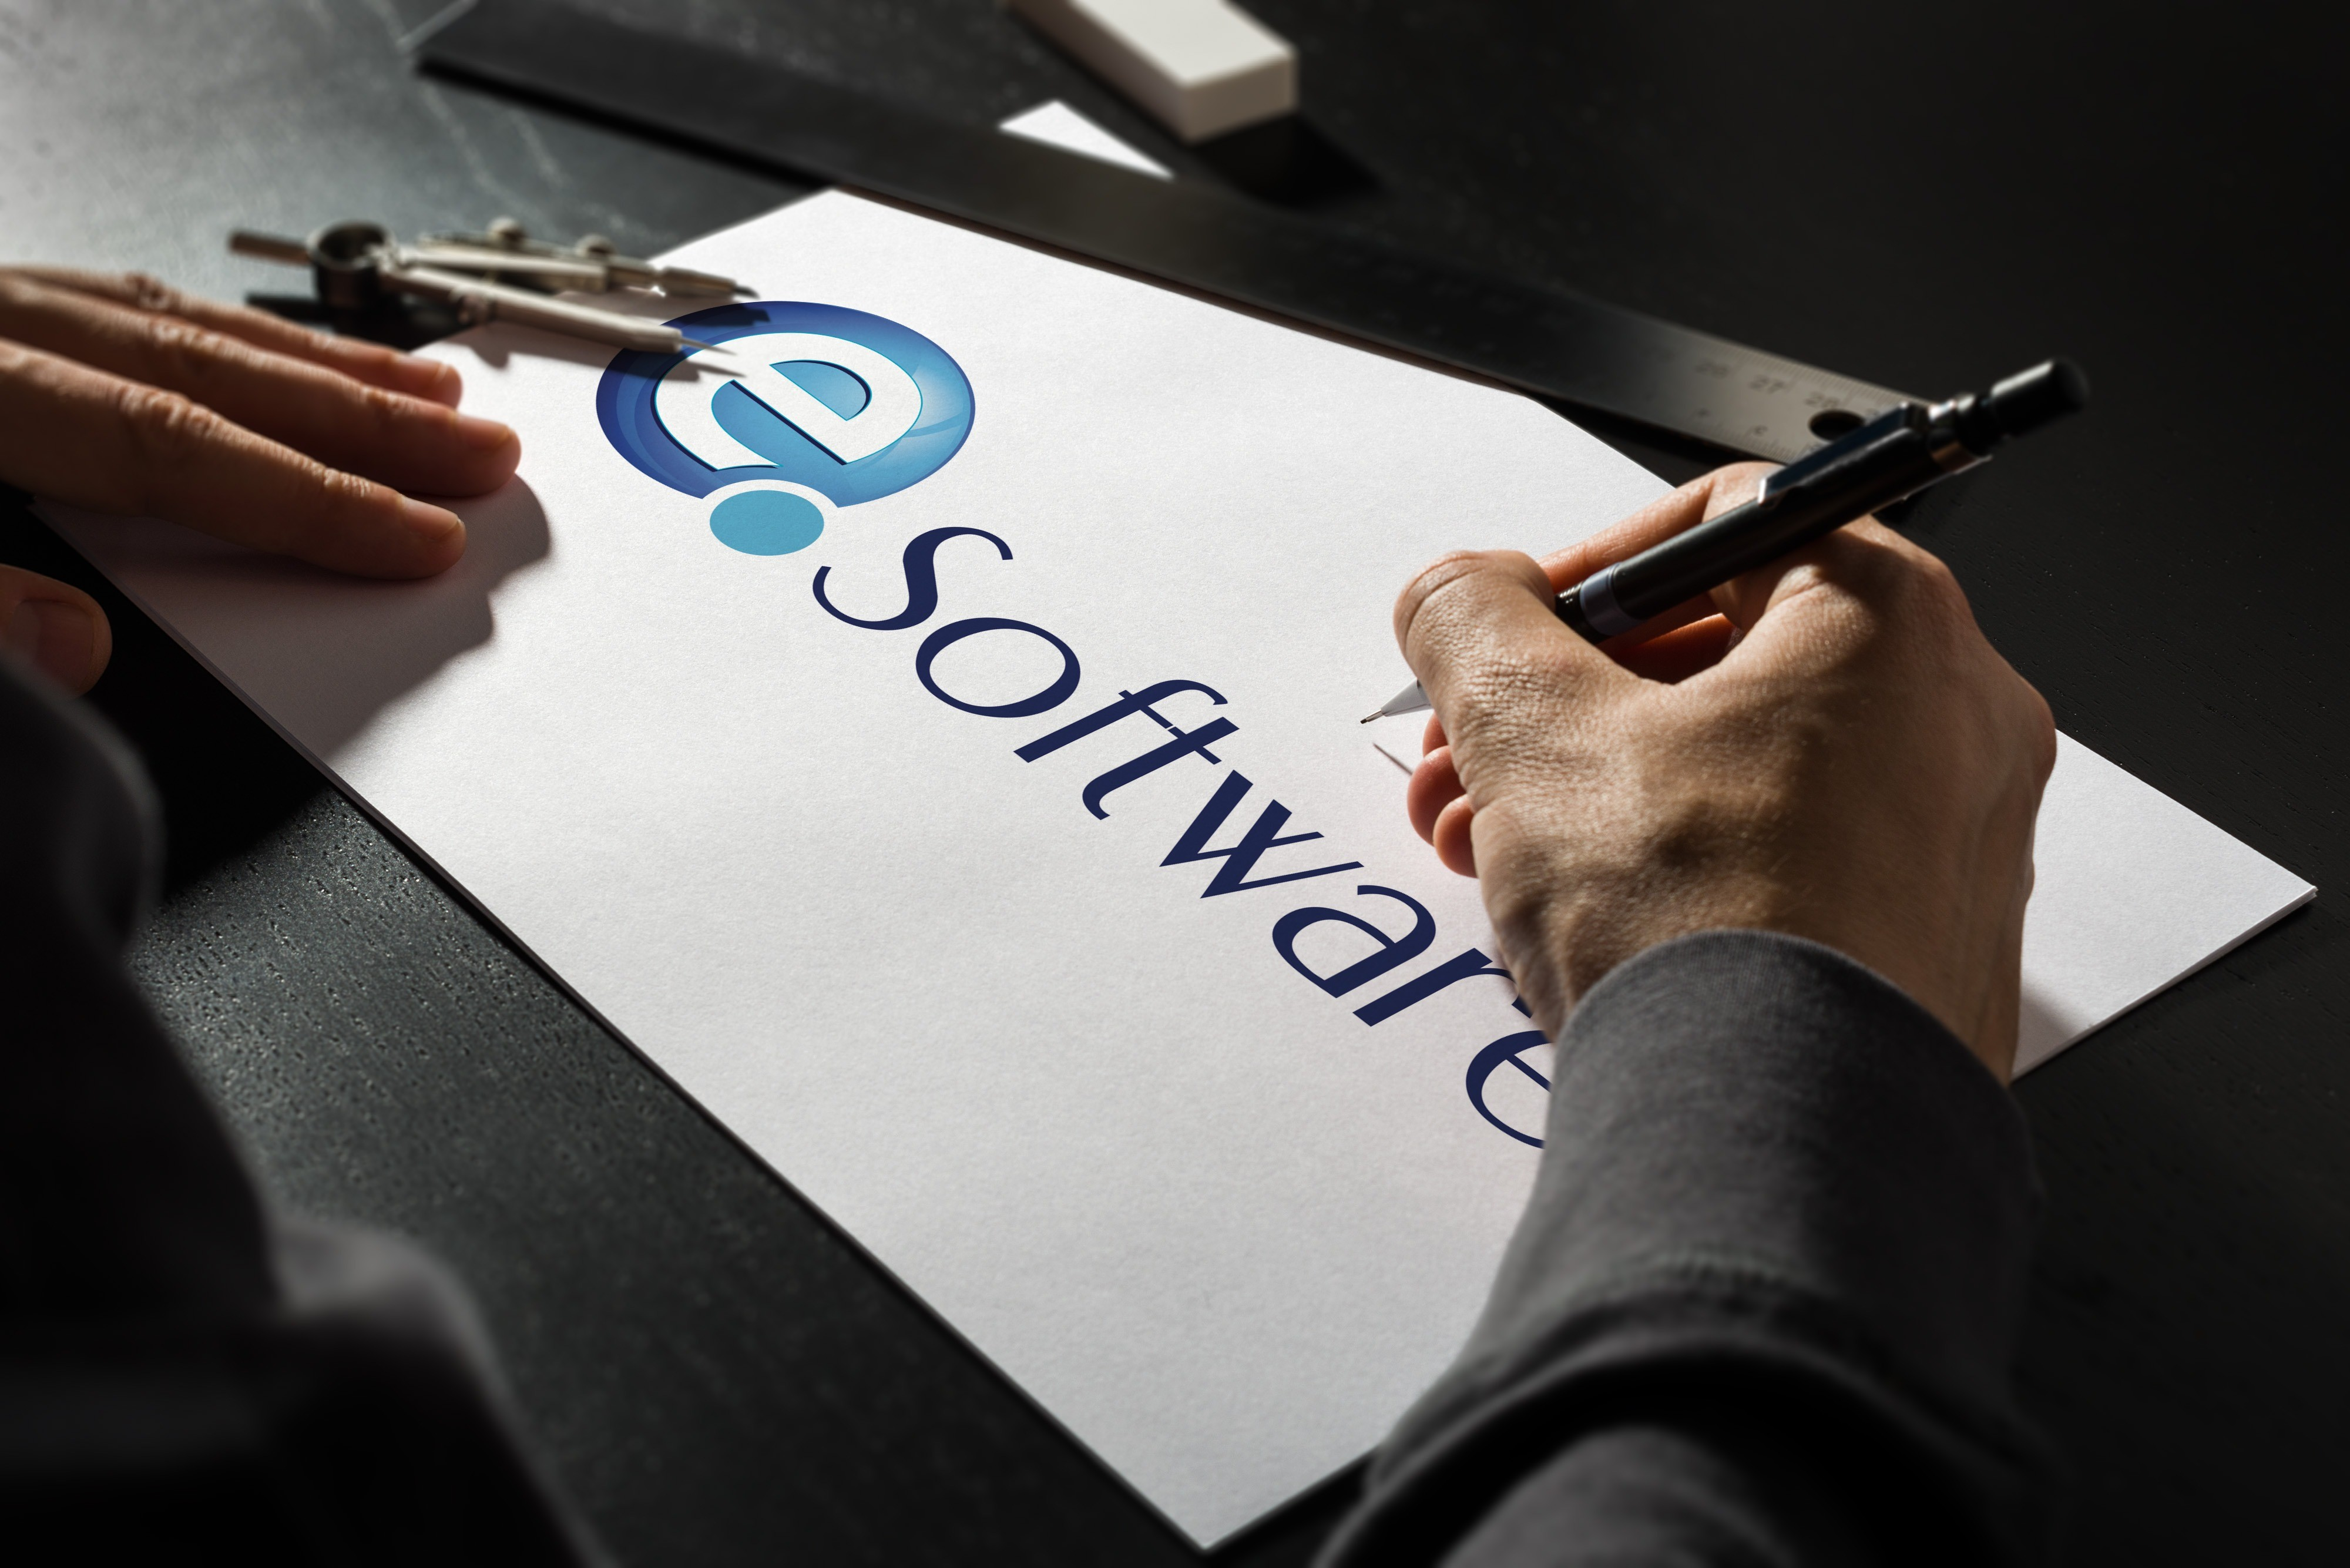 An image showing a person making finishing touches to the EQ Software logo on a sketchpad.